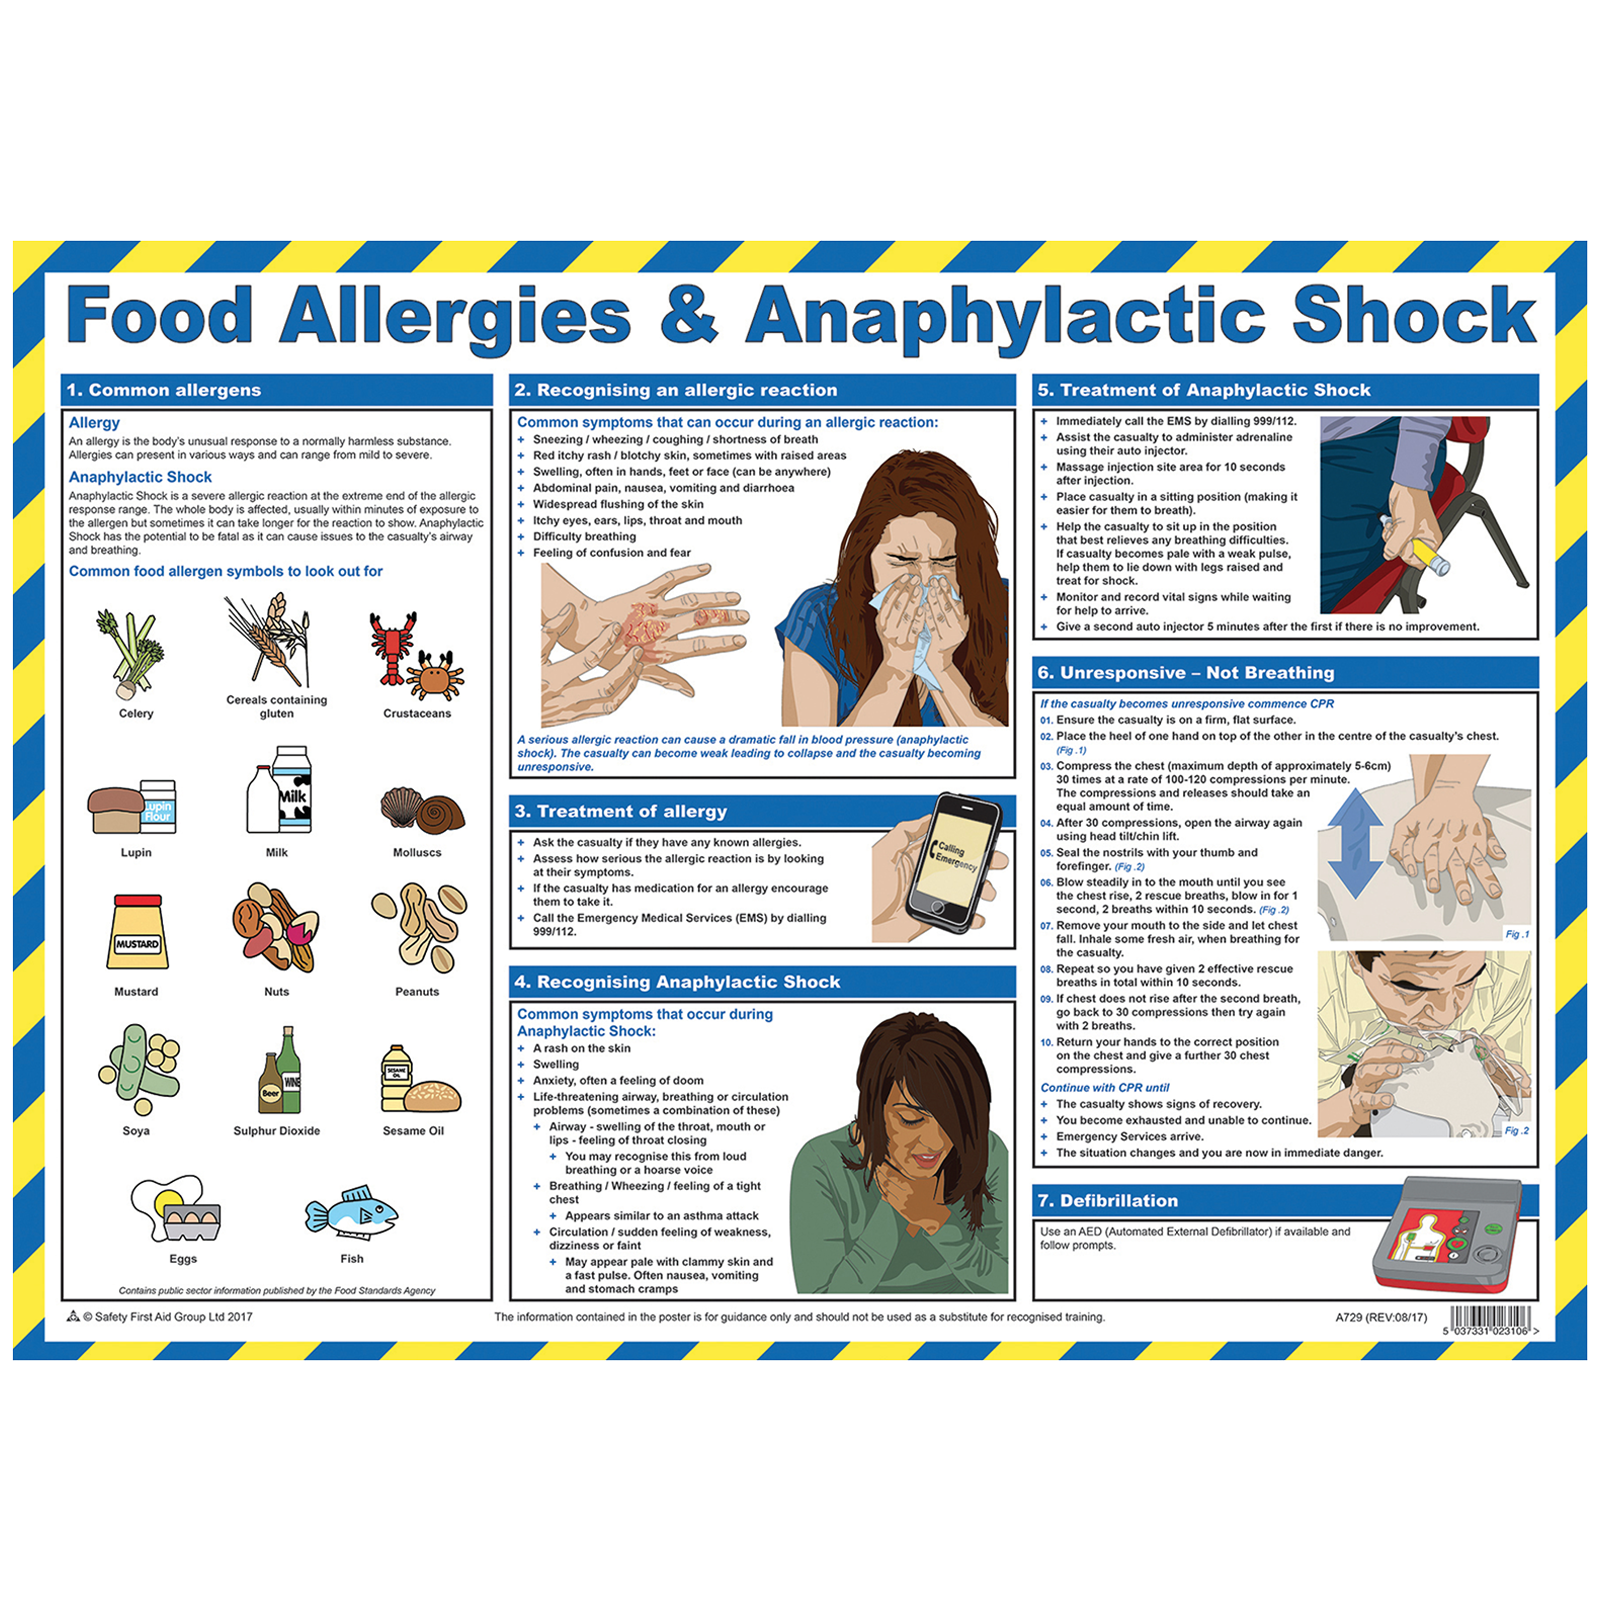 anaphylactic shock and food allergies poster